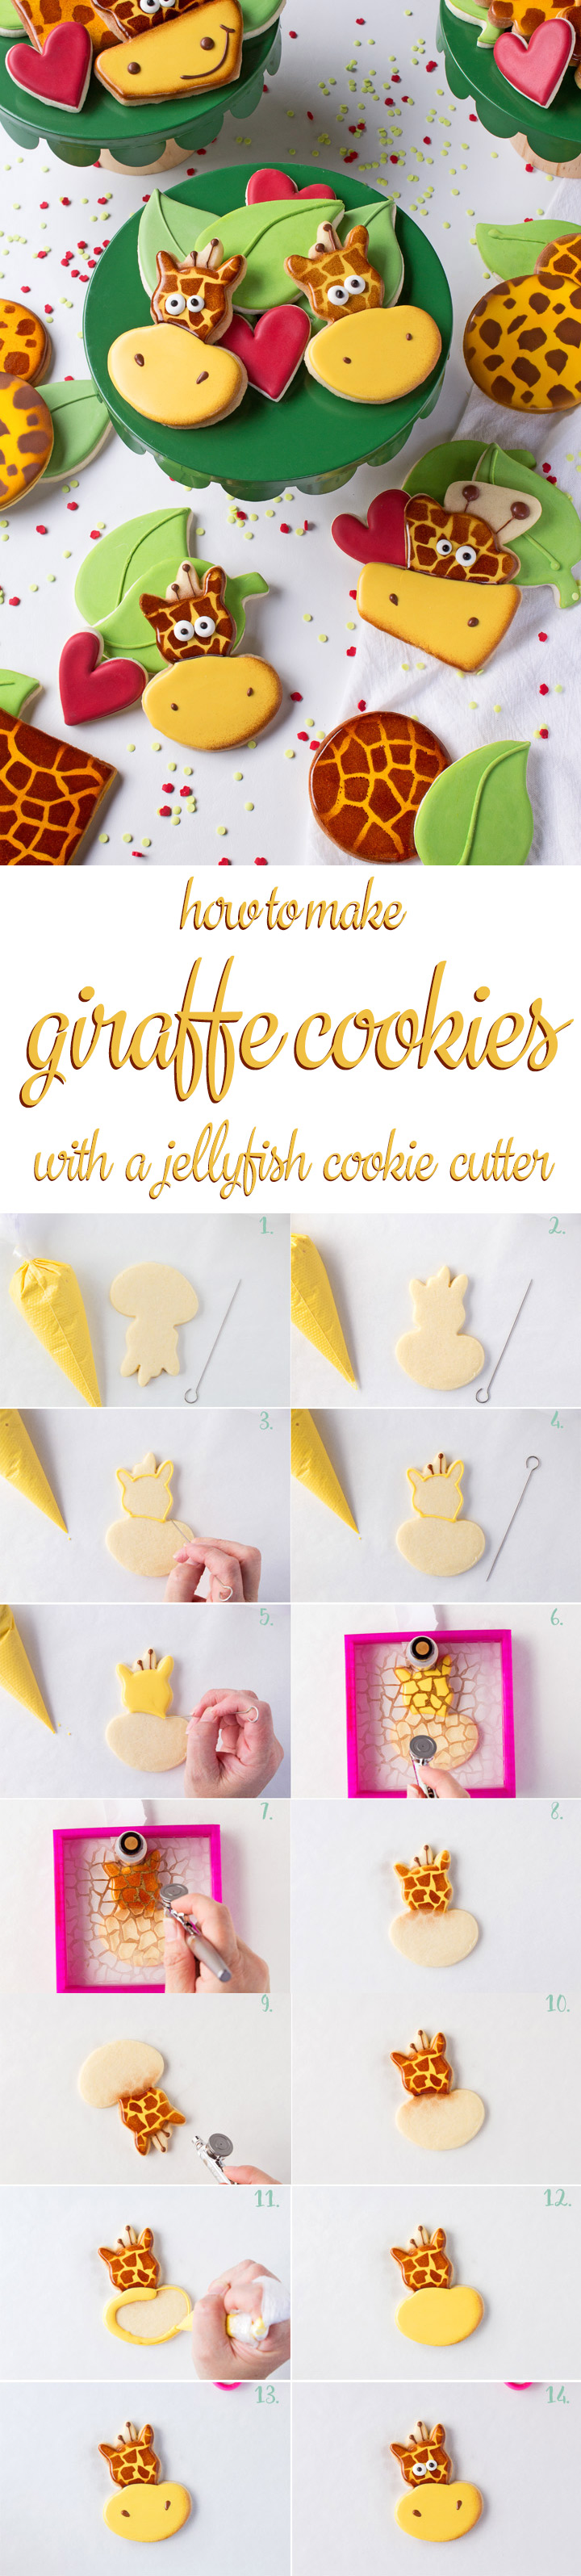 How to Make Silly Giraffe Cookies with a How to Video | The Bearfoot Baker